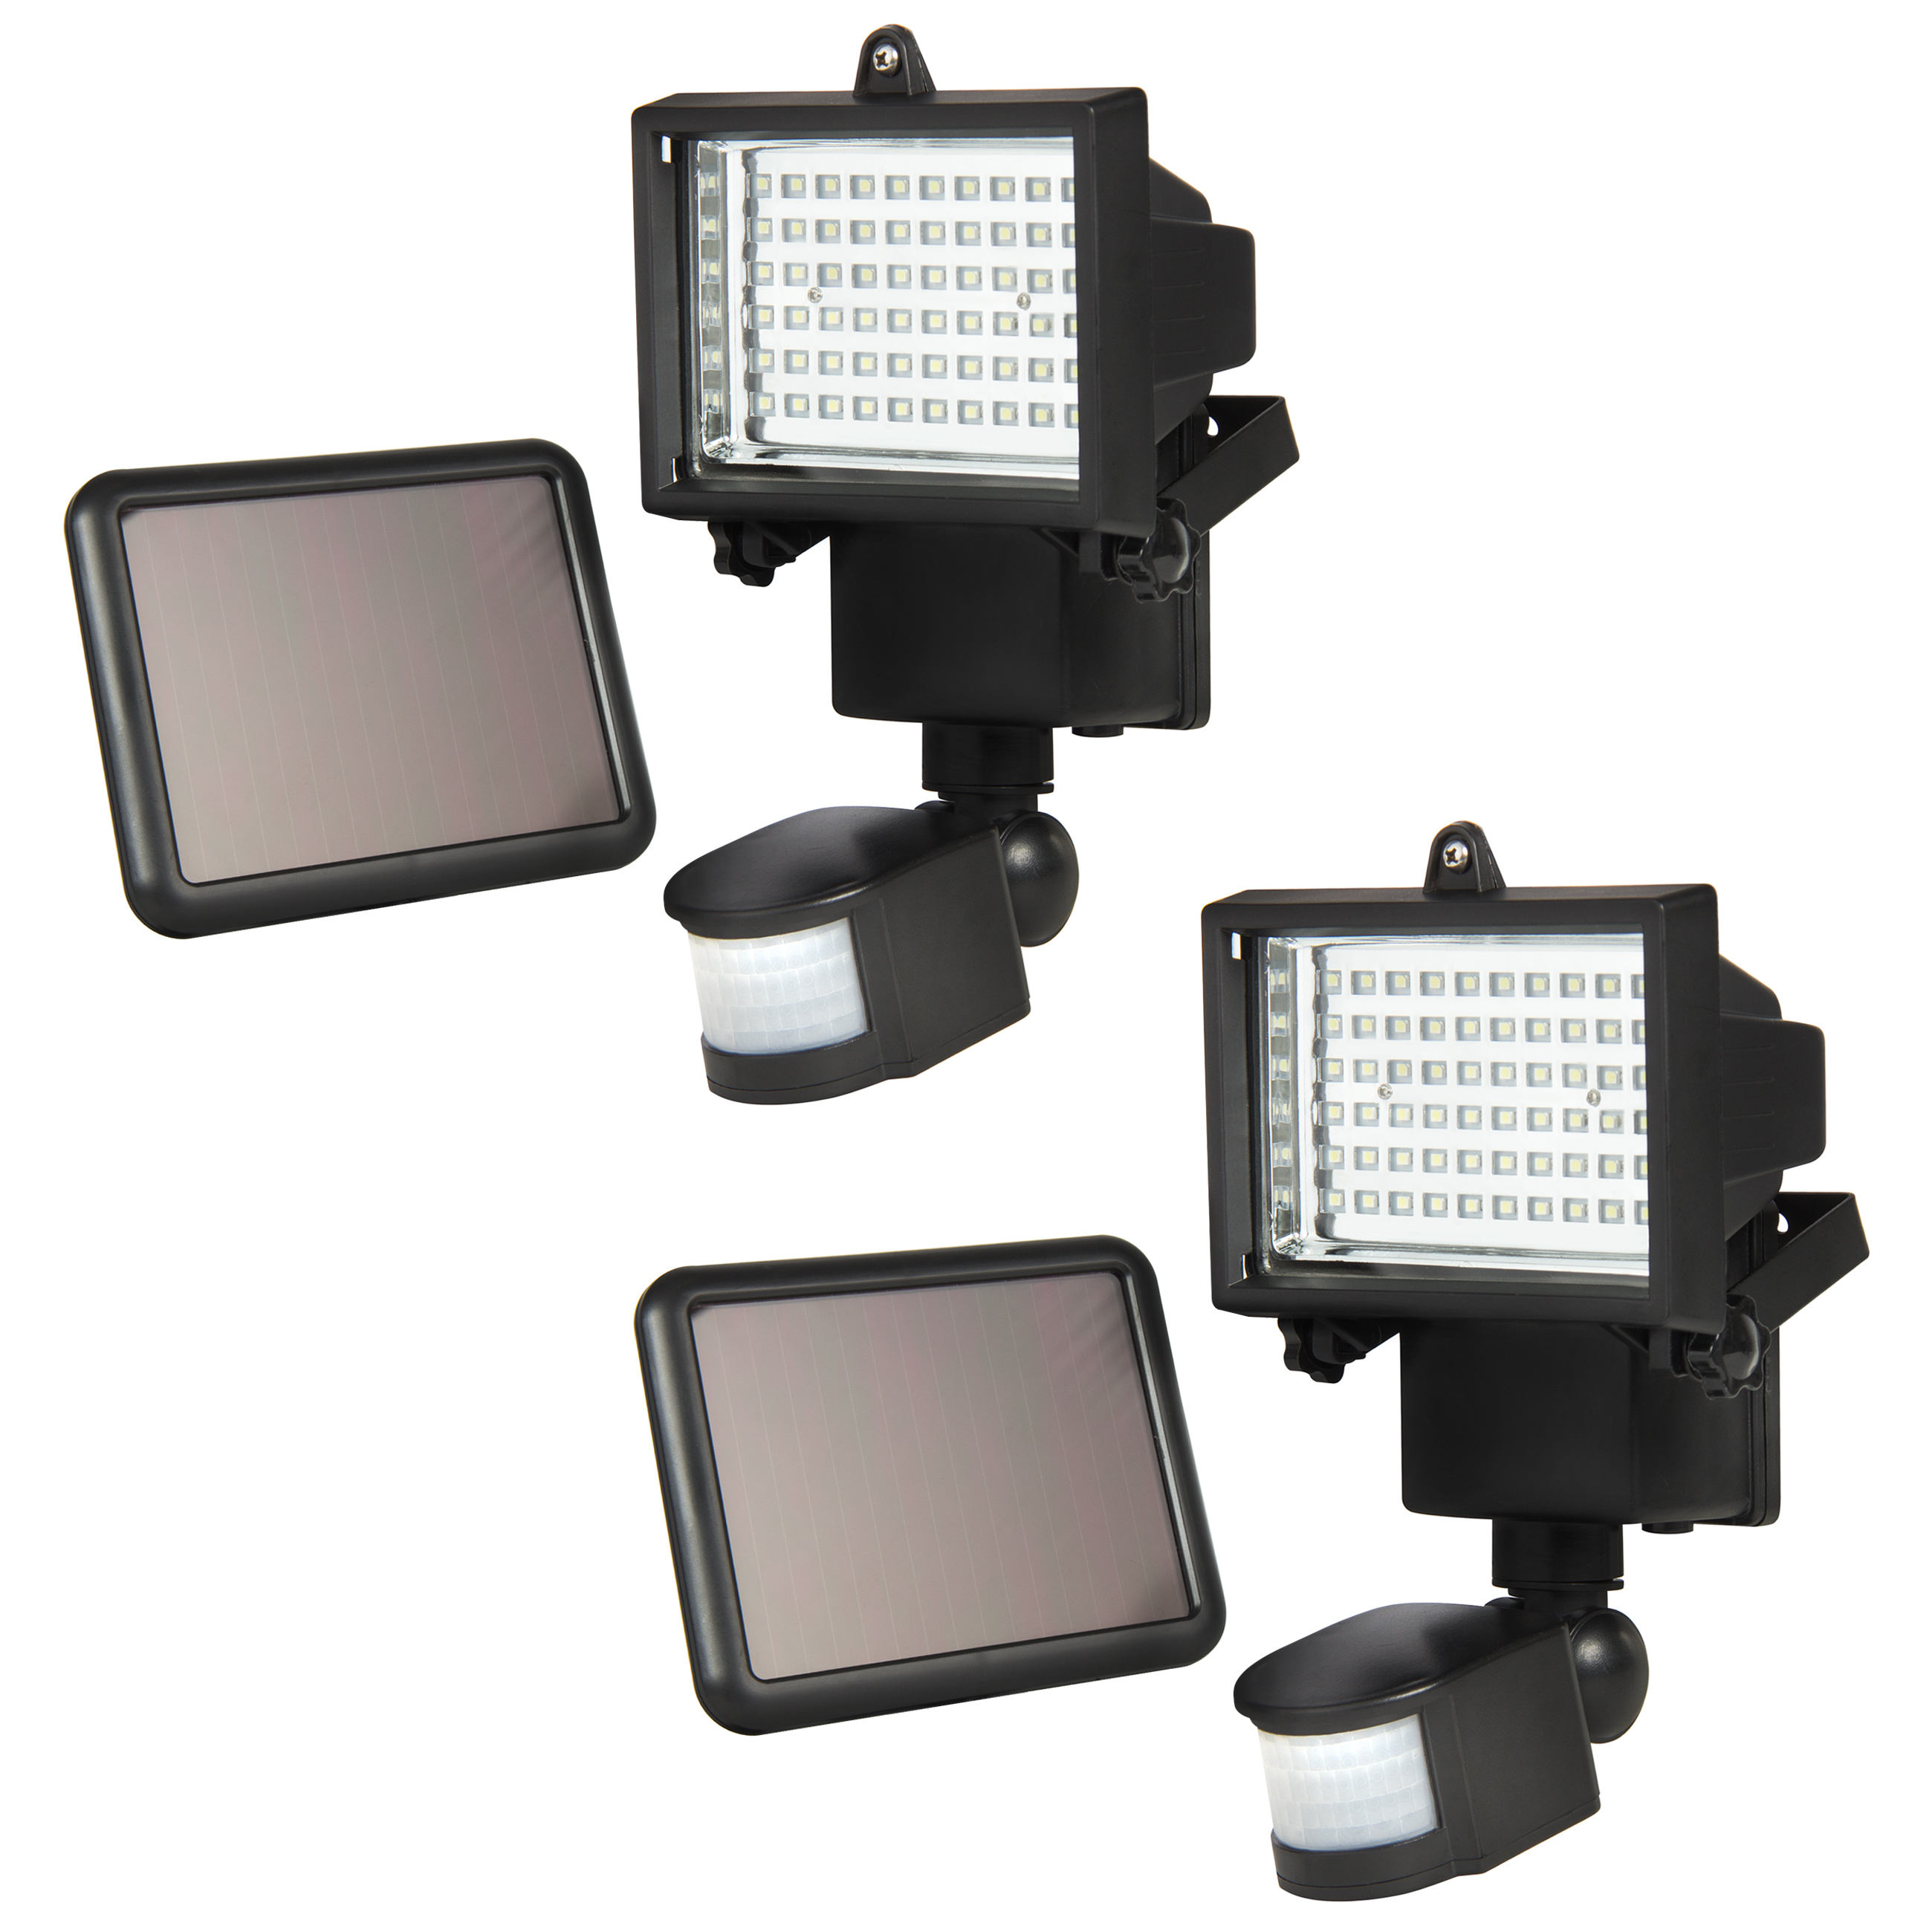 2 PACK 60 LEDs Outdoor Garden Solar Motion Sensor Security Flood Light Spot  Lamp